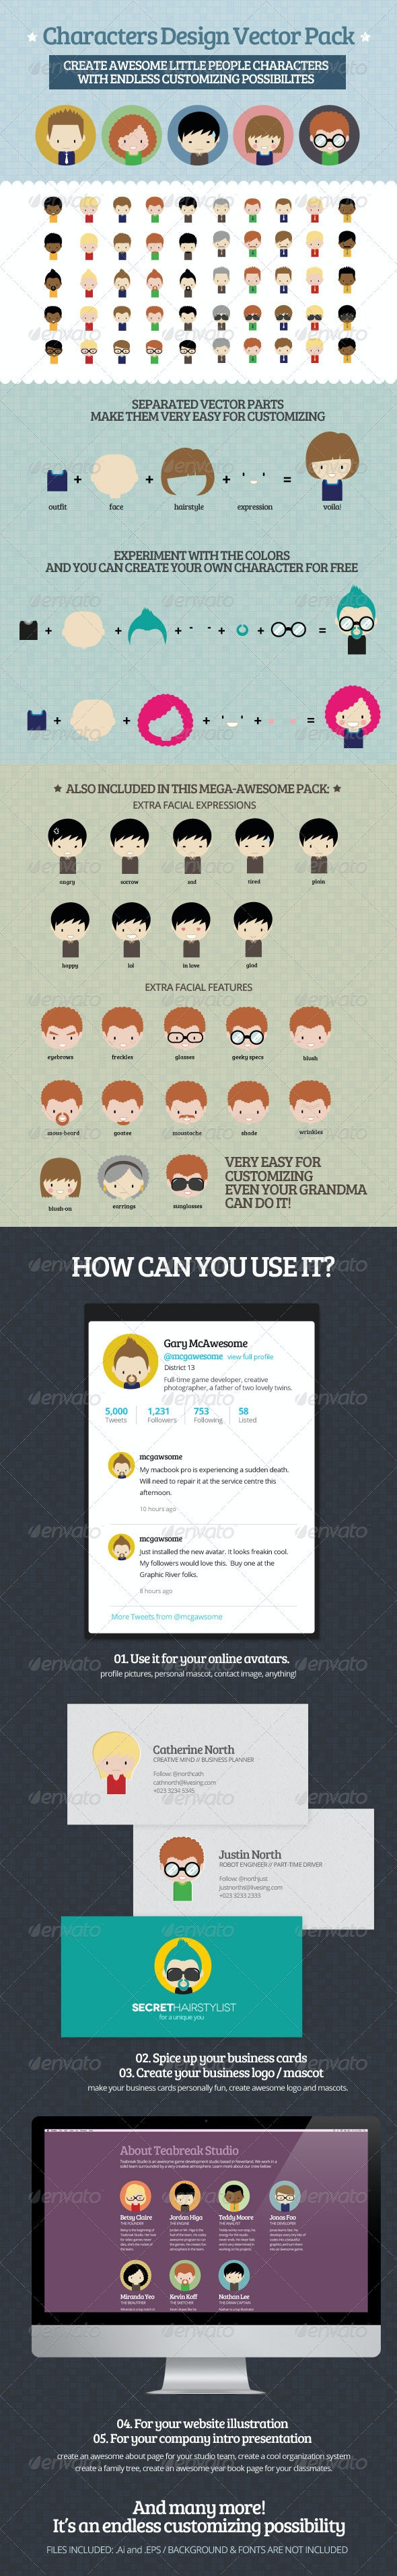 Characters Design Vector Pack - People Characters